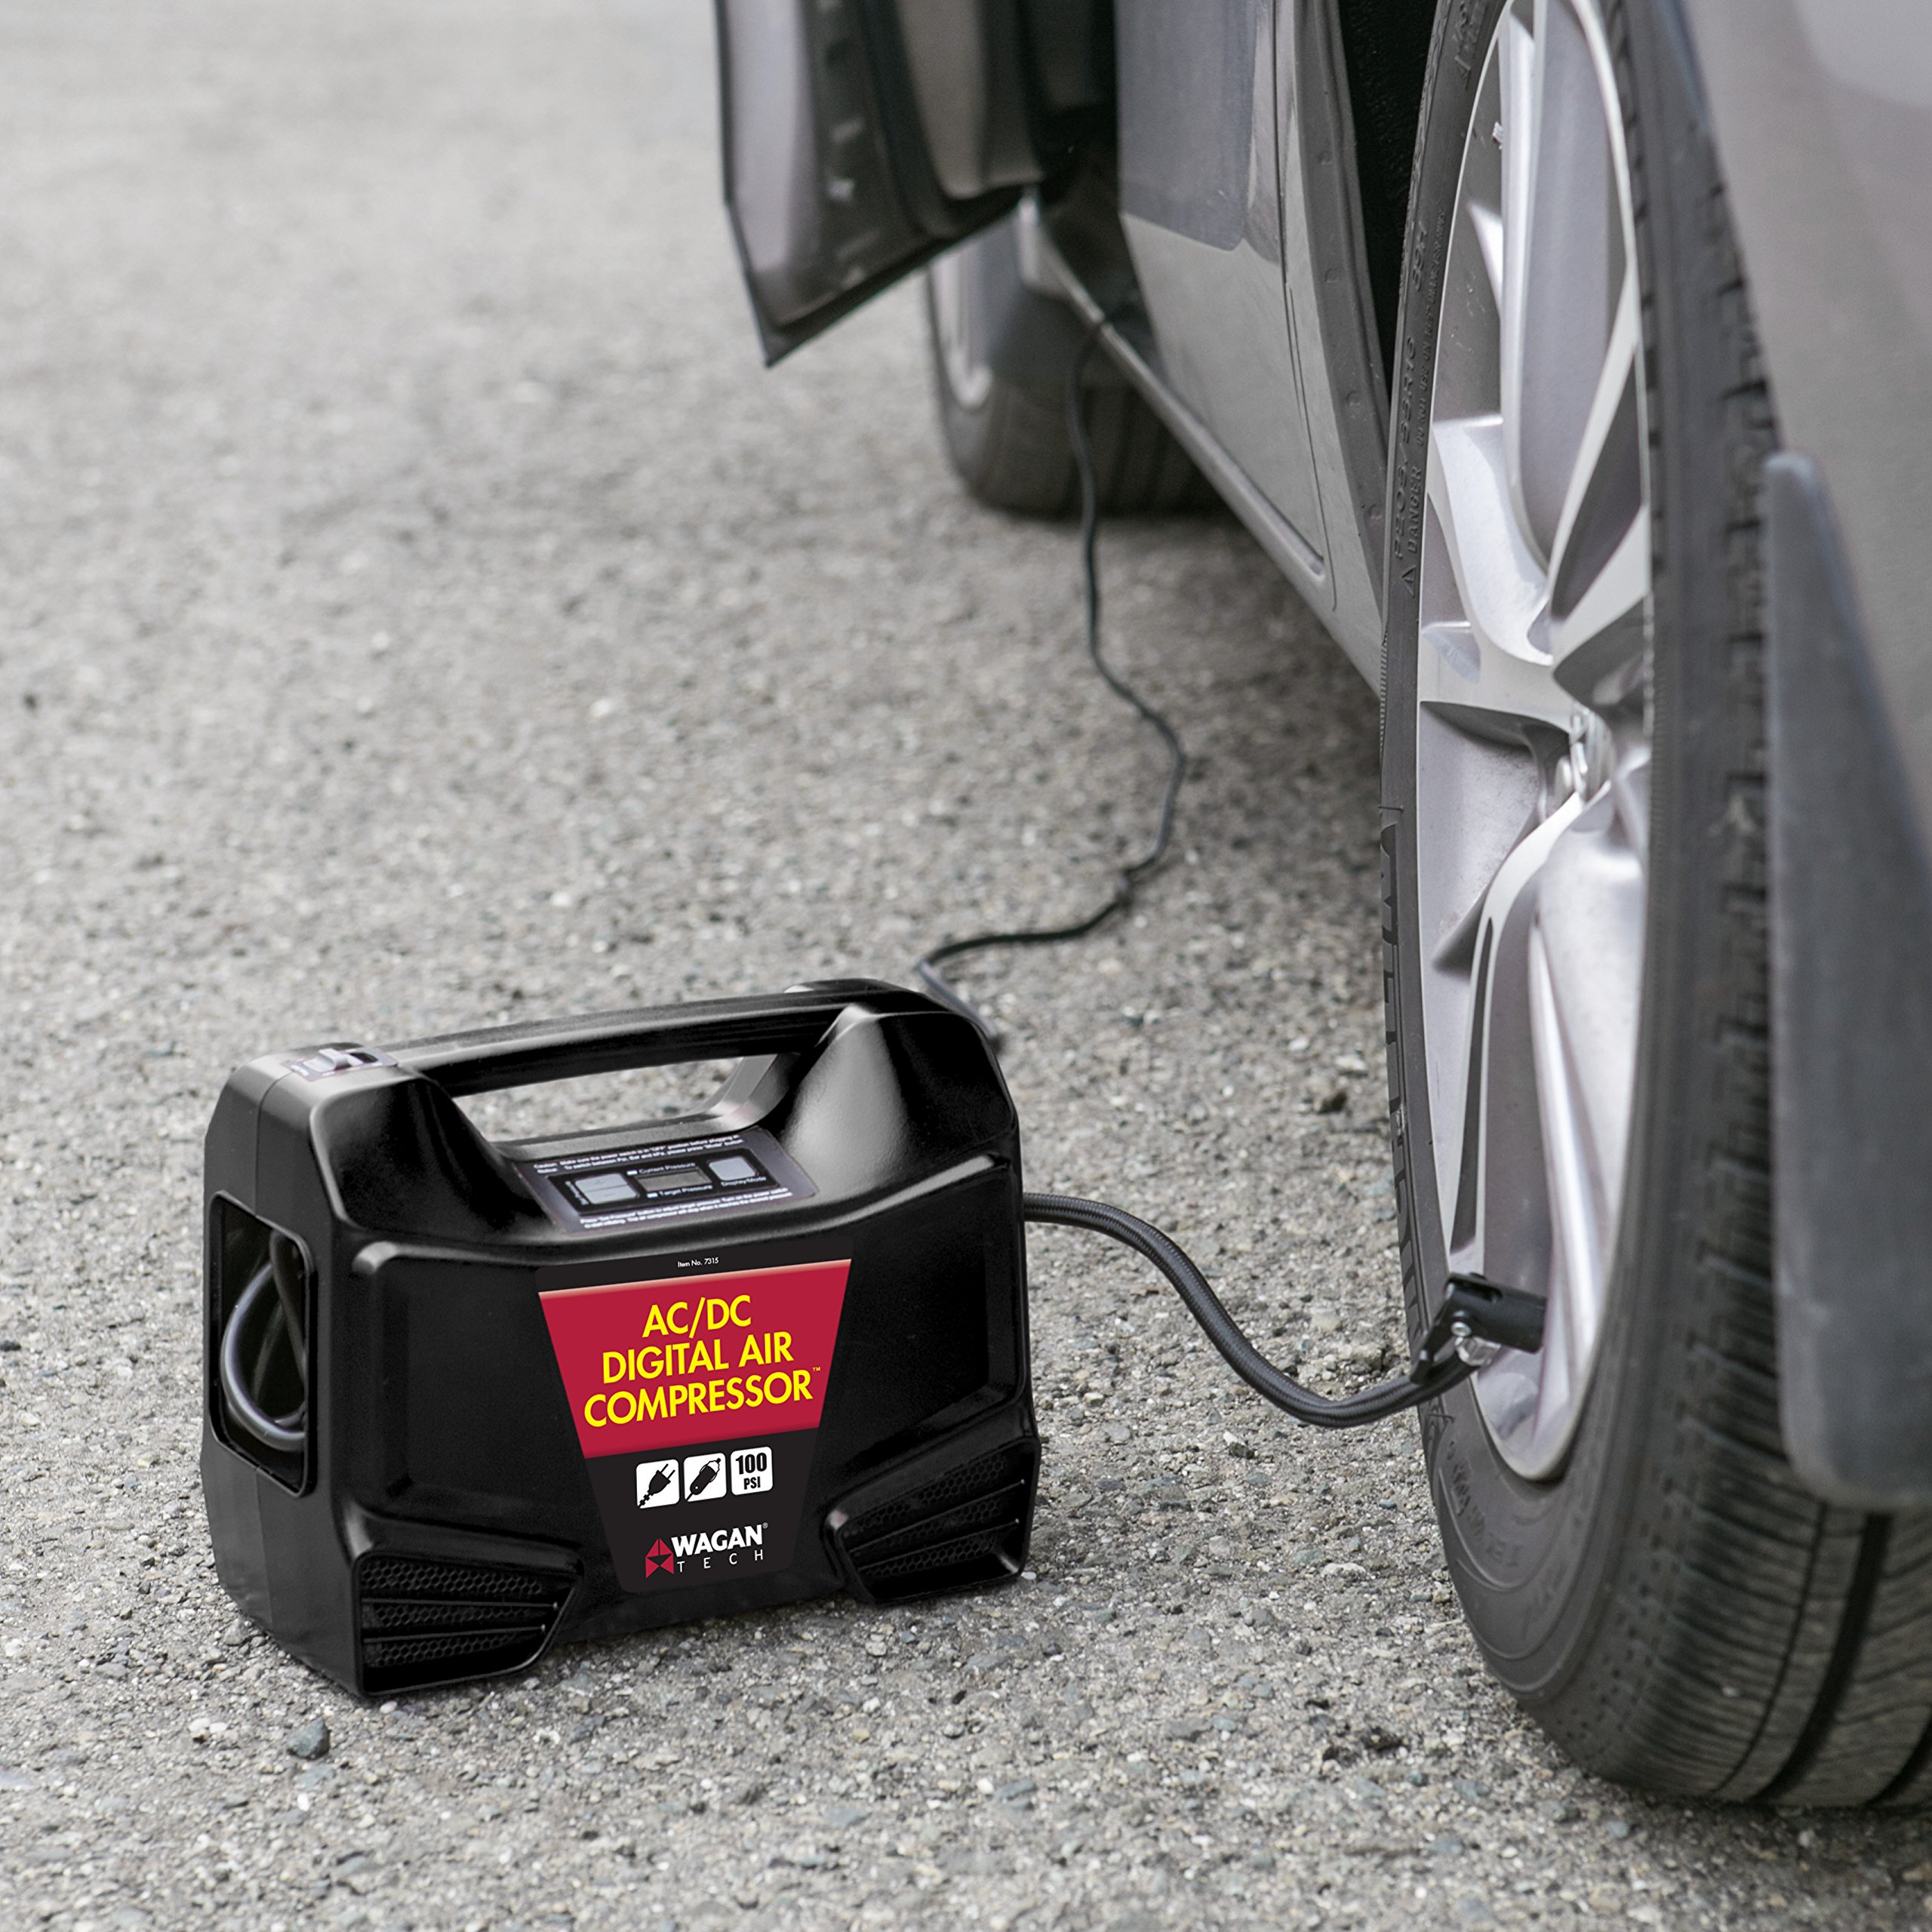 Wagan Digital Display Dual AC/DC 110V/12V Air Compressor Tire Inflator with Nozzle Adapters for Vehicle Outdoor and Home Indoor Use by Wagan (Image #6)